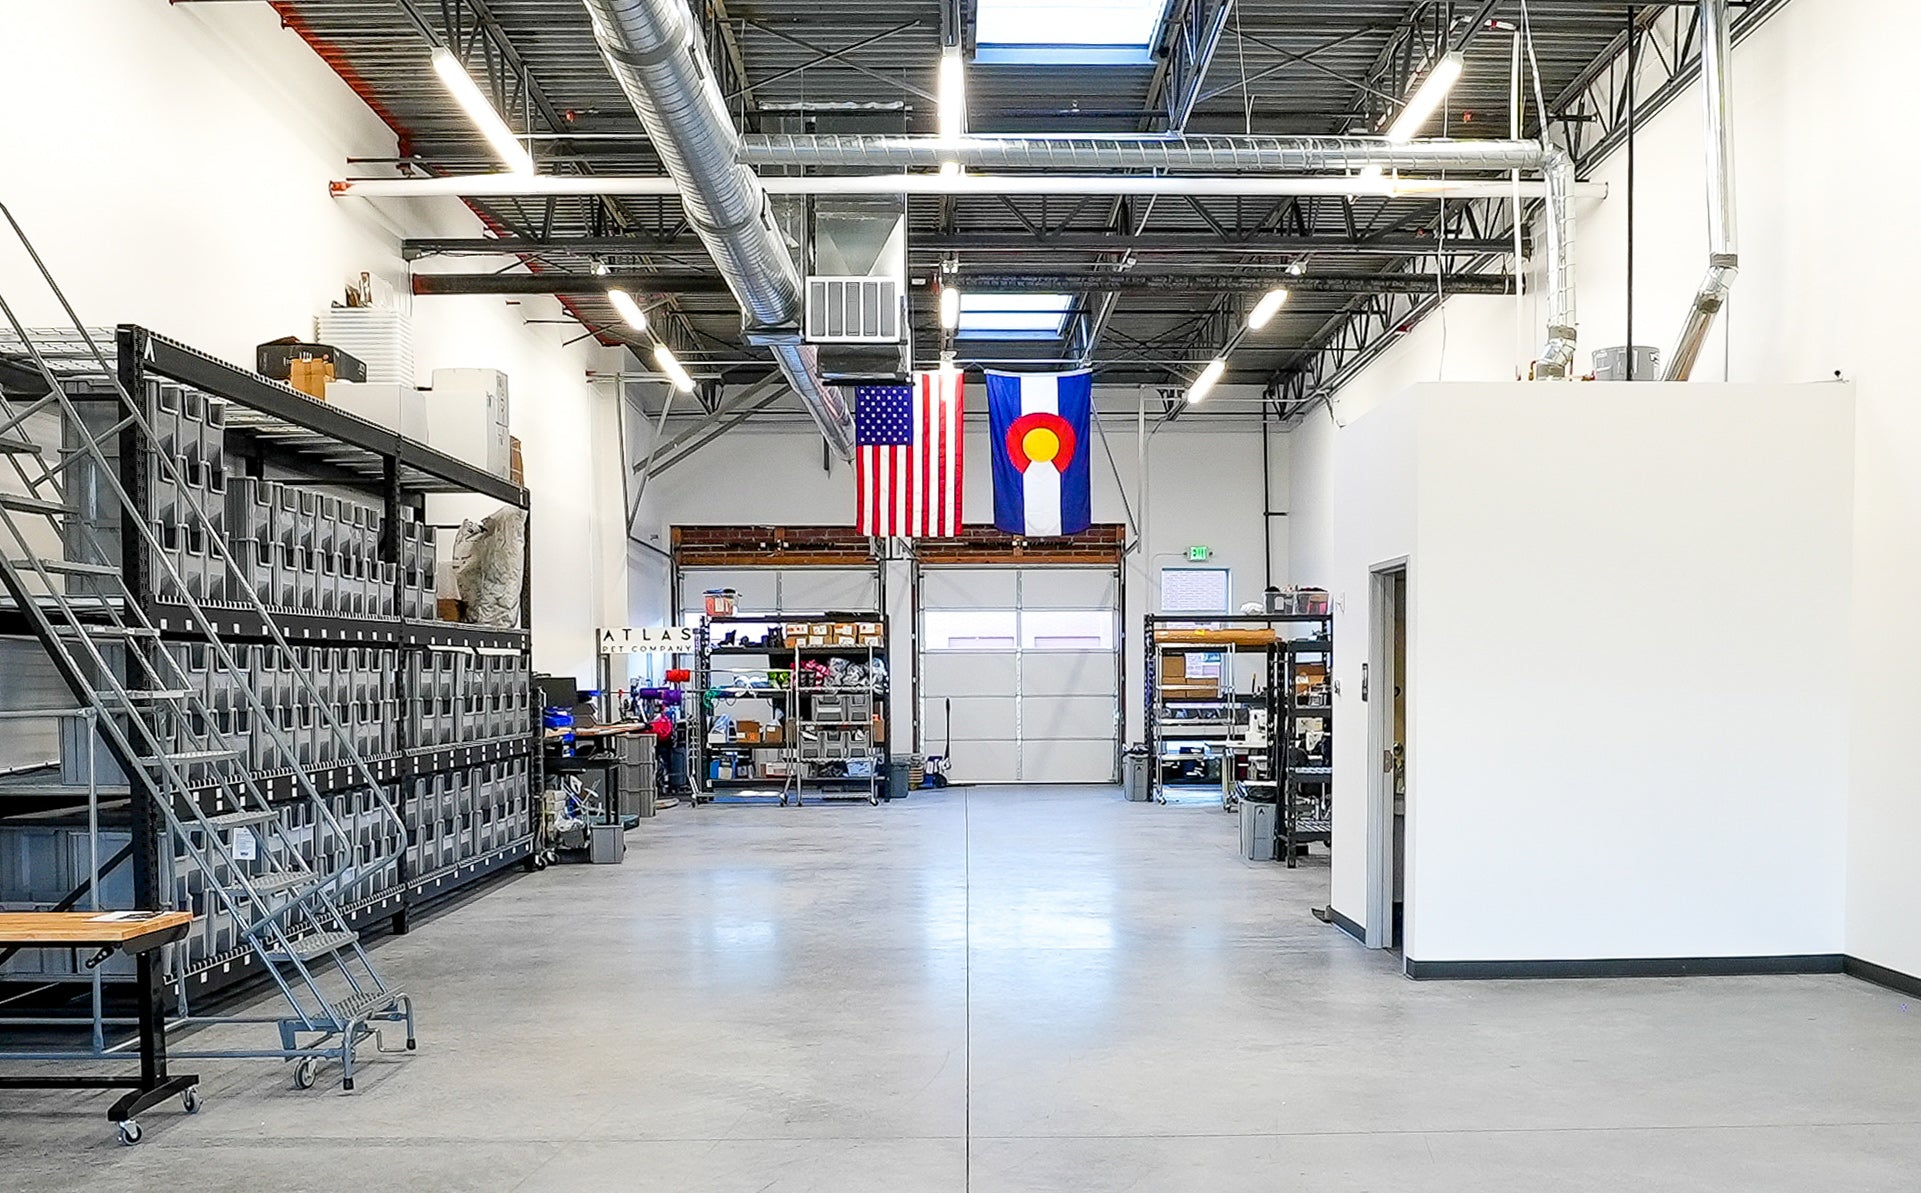 atlas pet company warehouse golden colorado 150 capital drive handmade dog products guaranteed for life even if your pup destroys it, our no questions asked lifetime warranty made in america